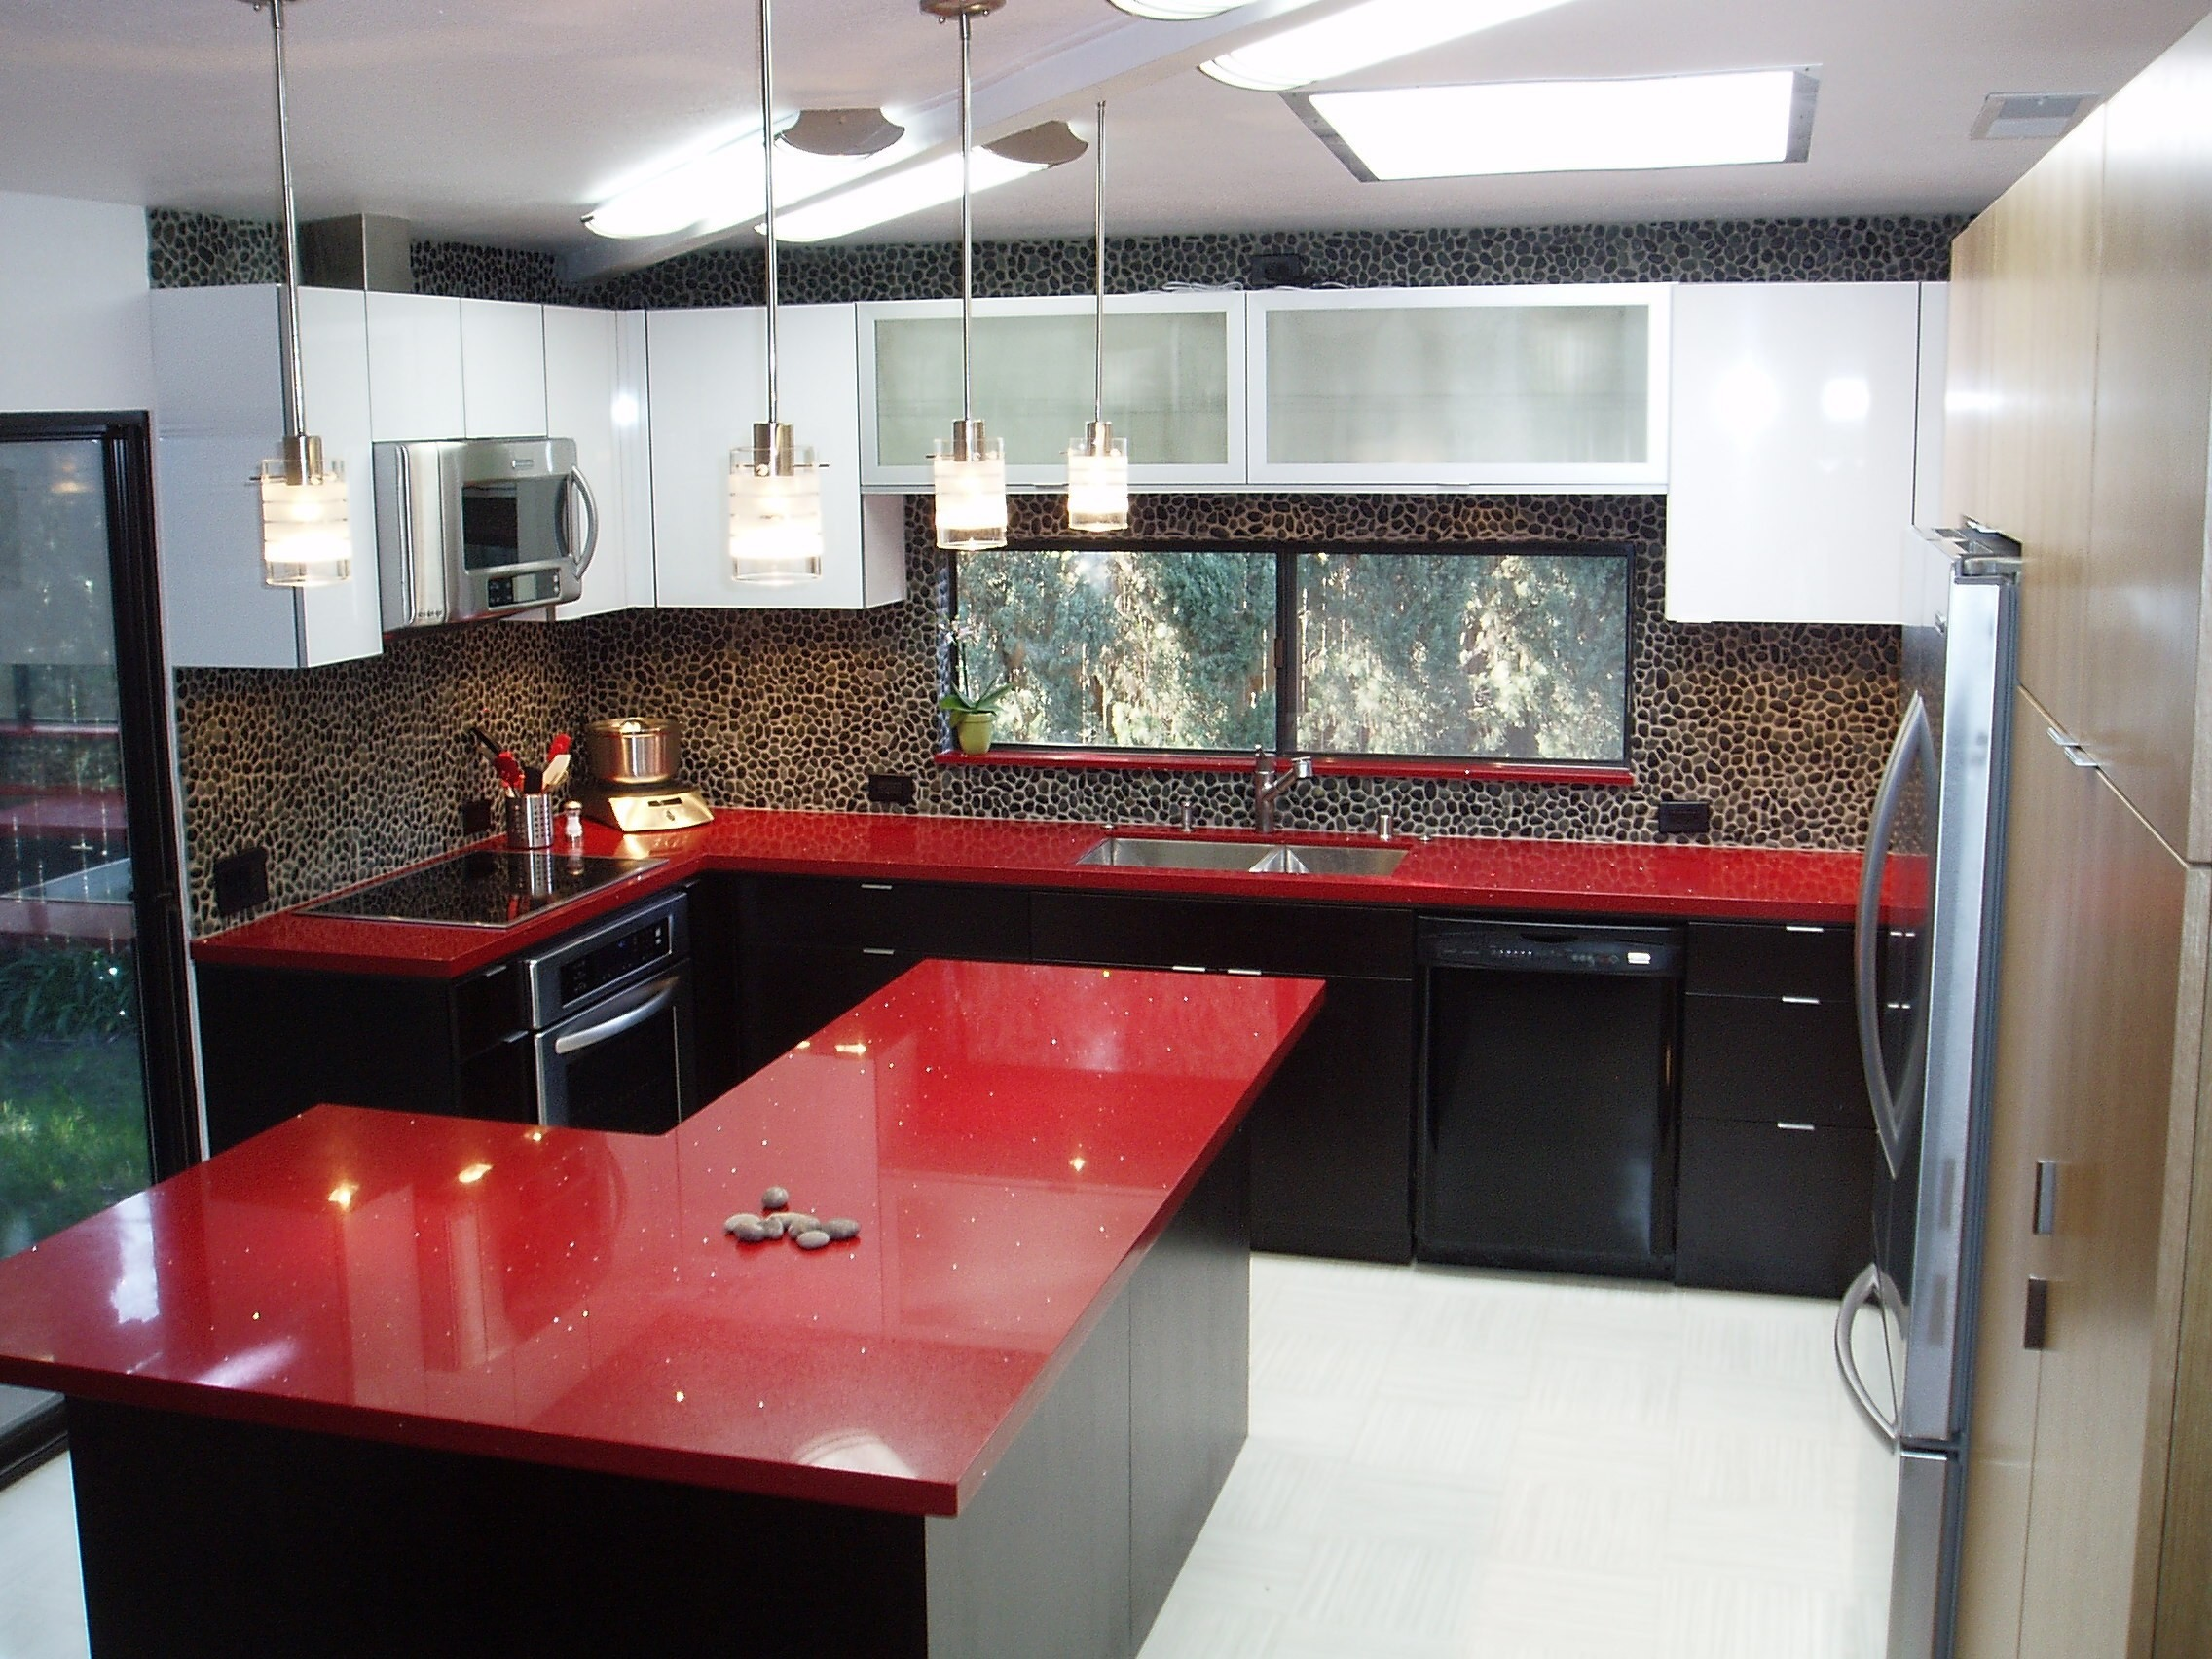 Desain Kitchen Set Merah Hitam Terbaik Untuk Red Kitchen Appliances Brilliant How About This Red Countertops